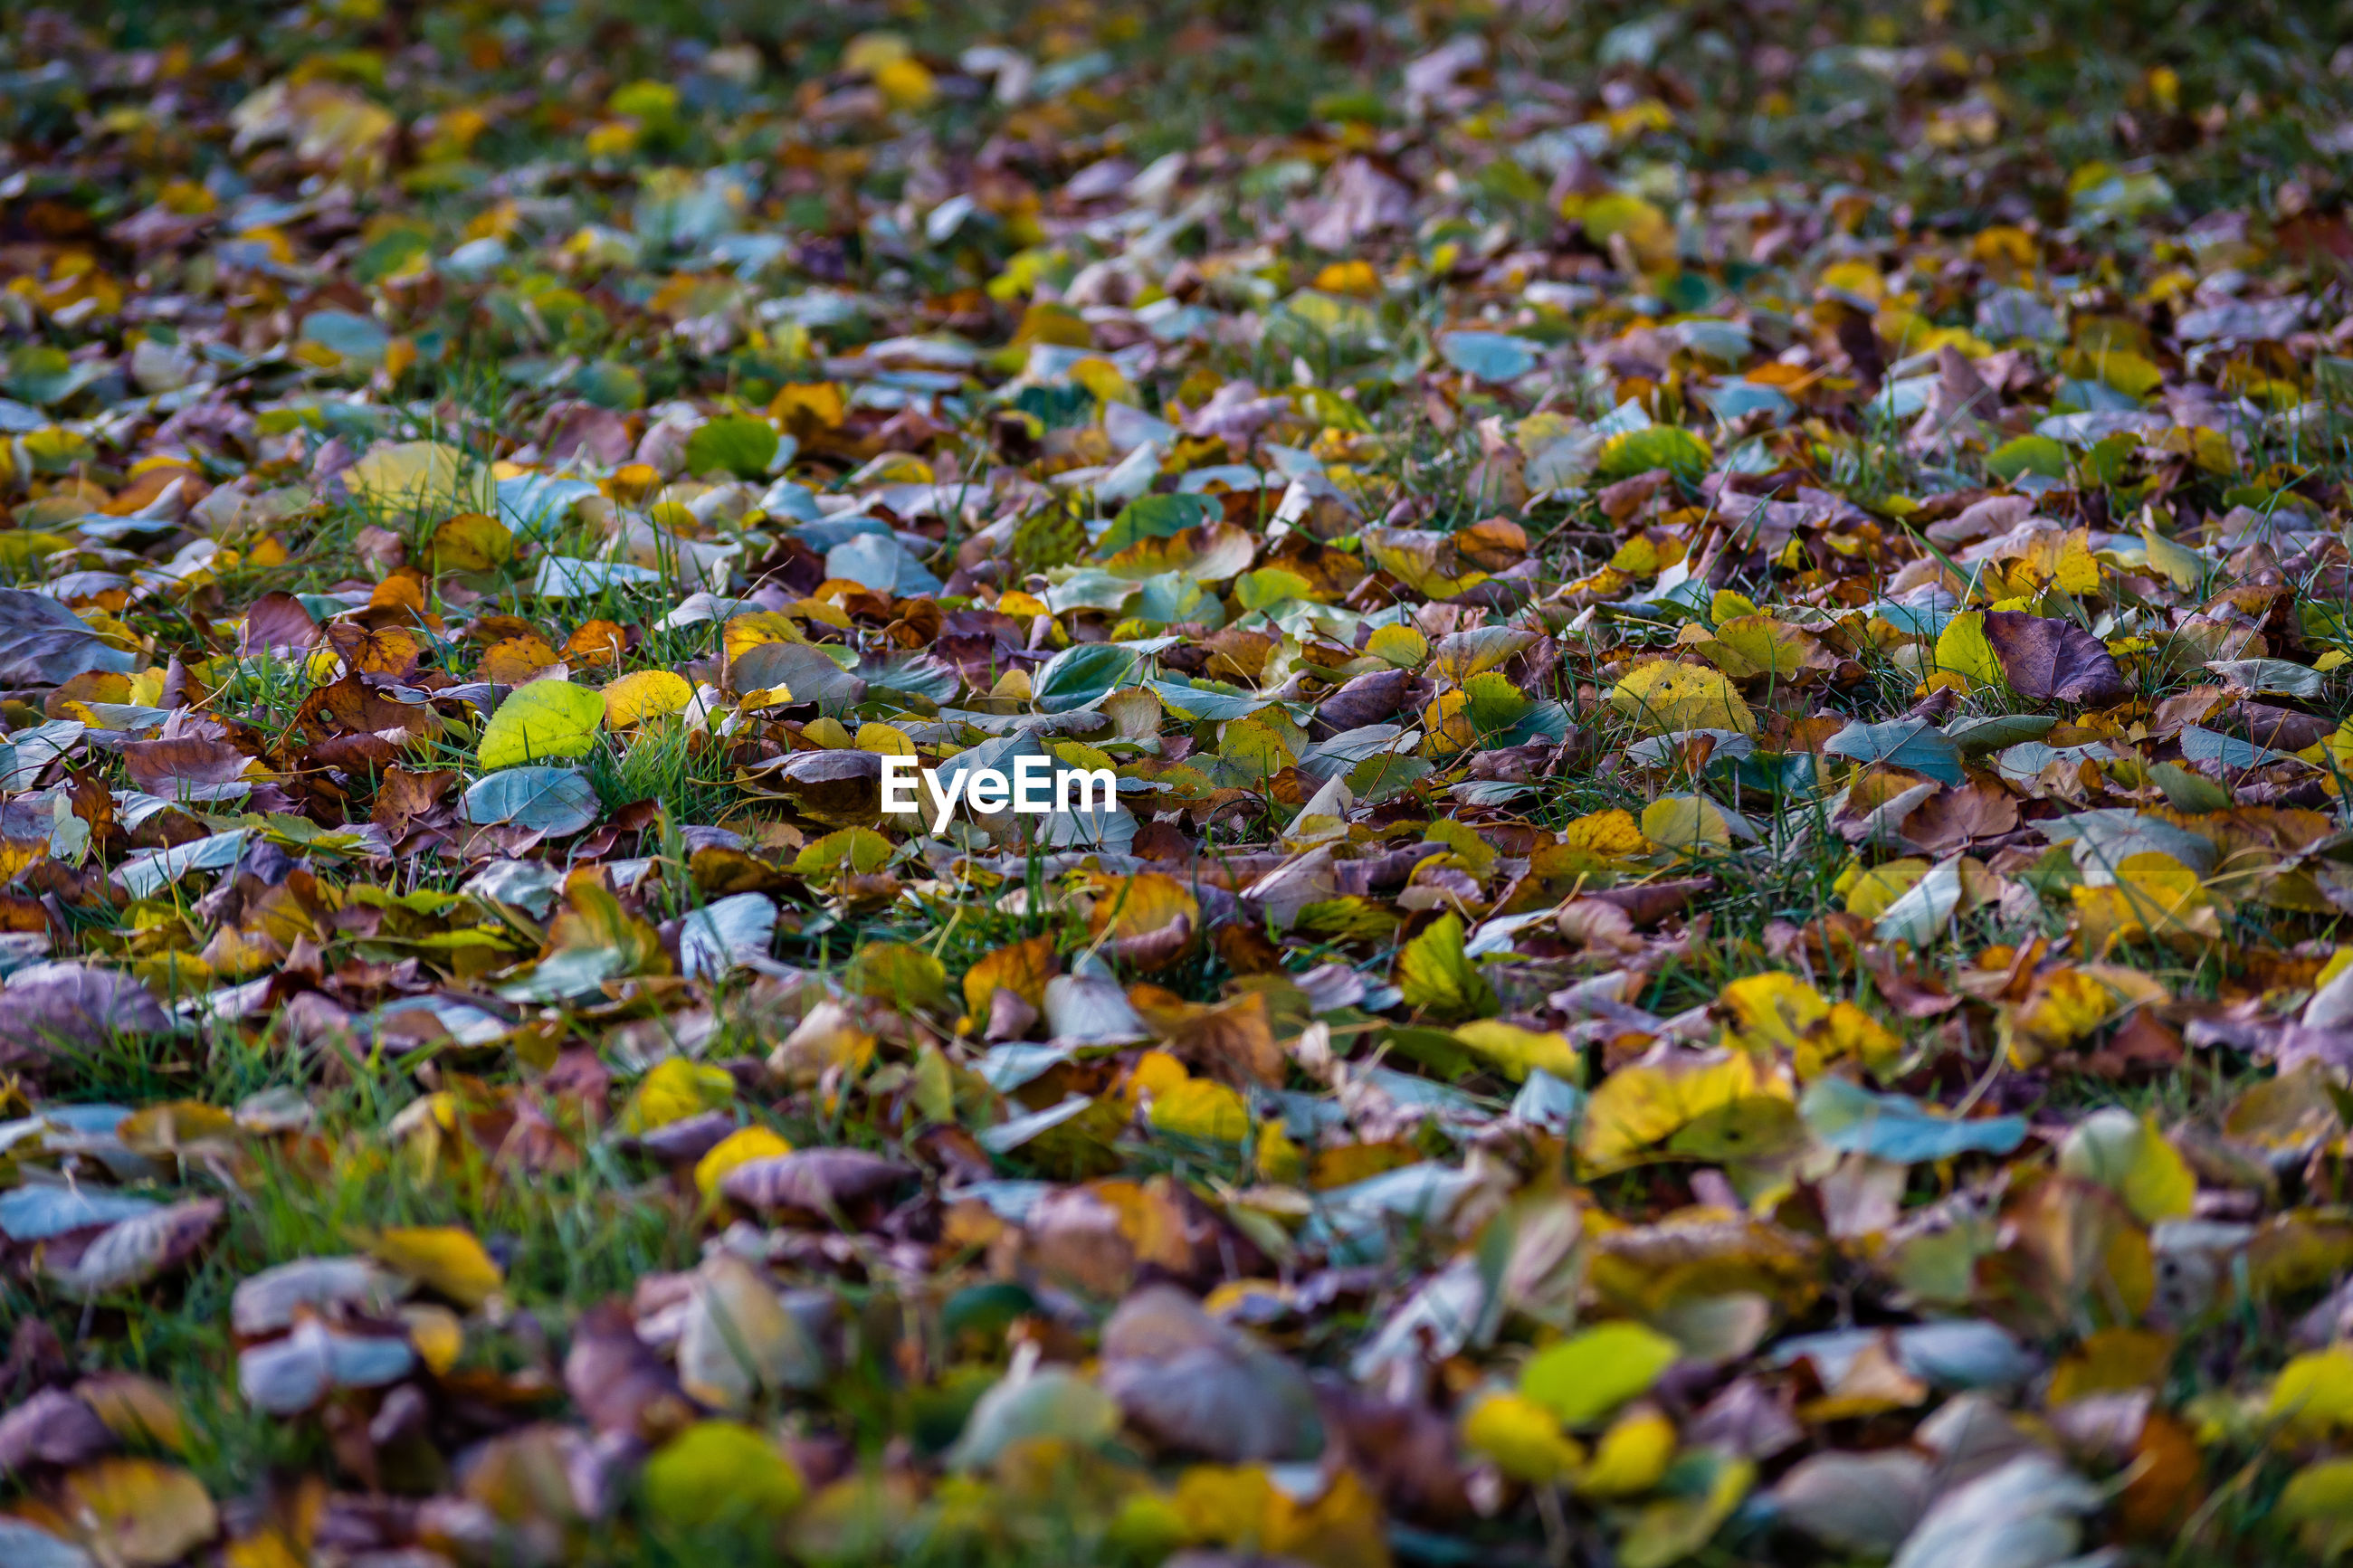 CLOSE-UP OF AUTUMN LEAVES FALLEN ON YELLOW FLOWERS